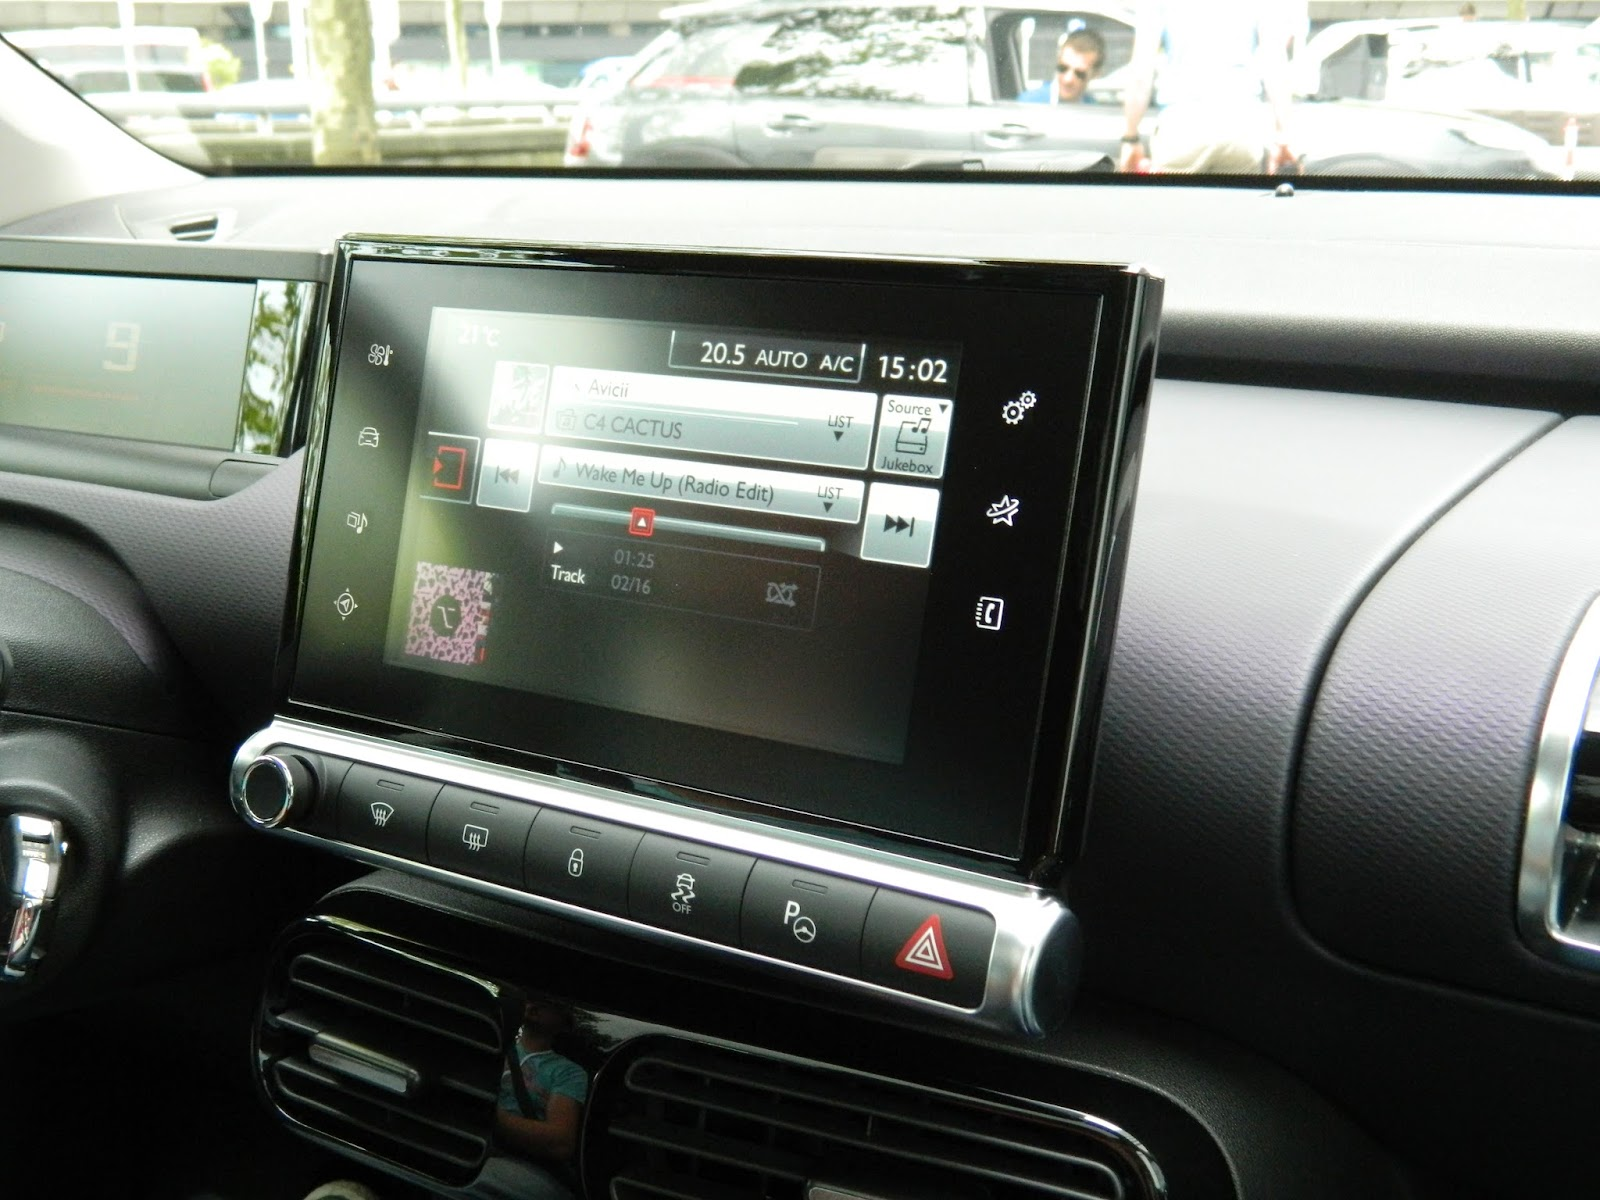 Citroen C4 Cactus touch screen